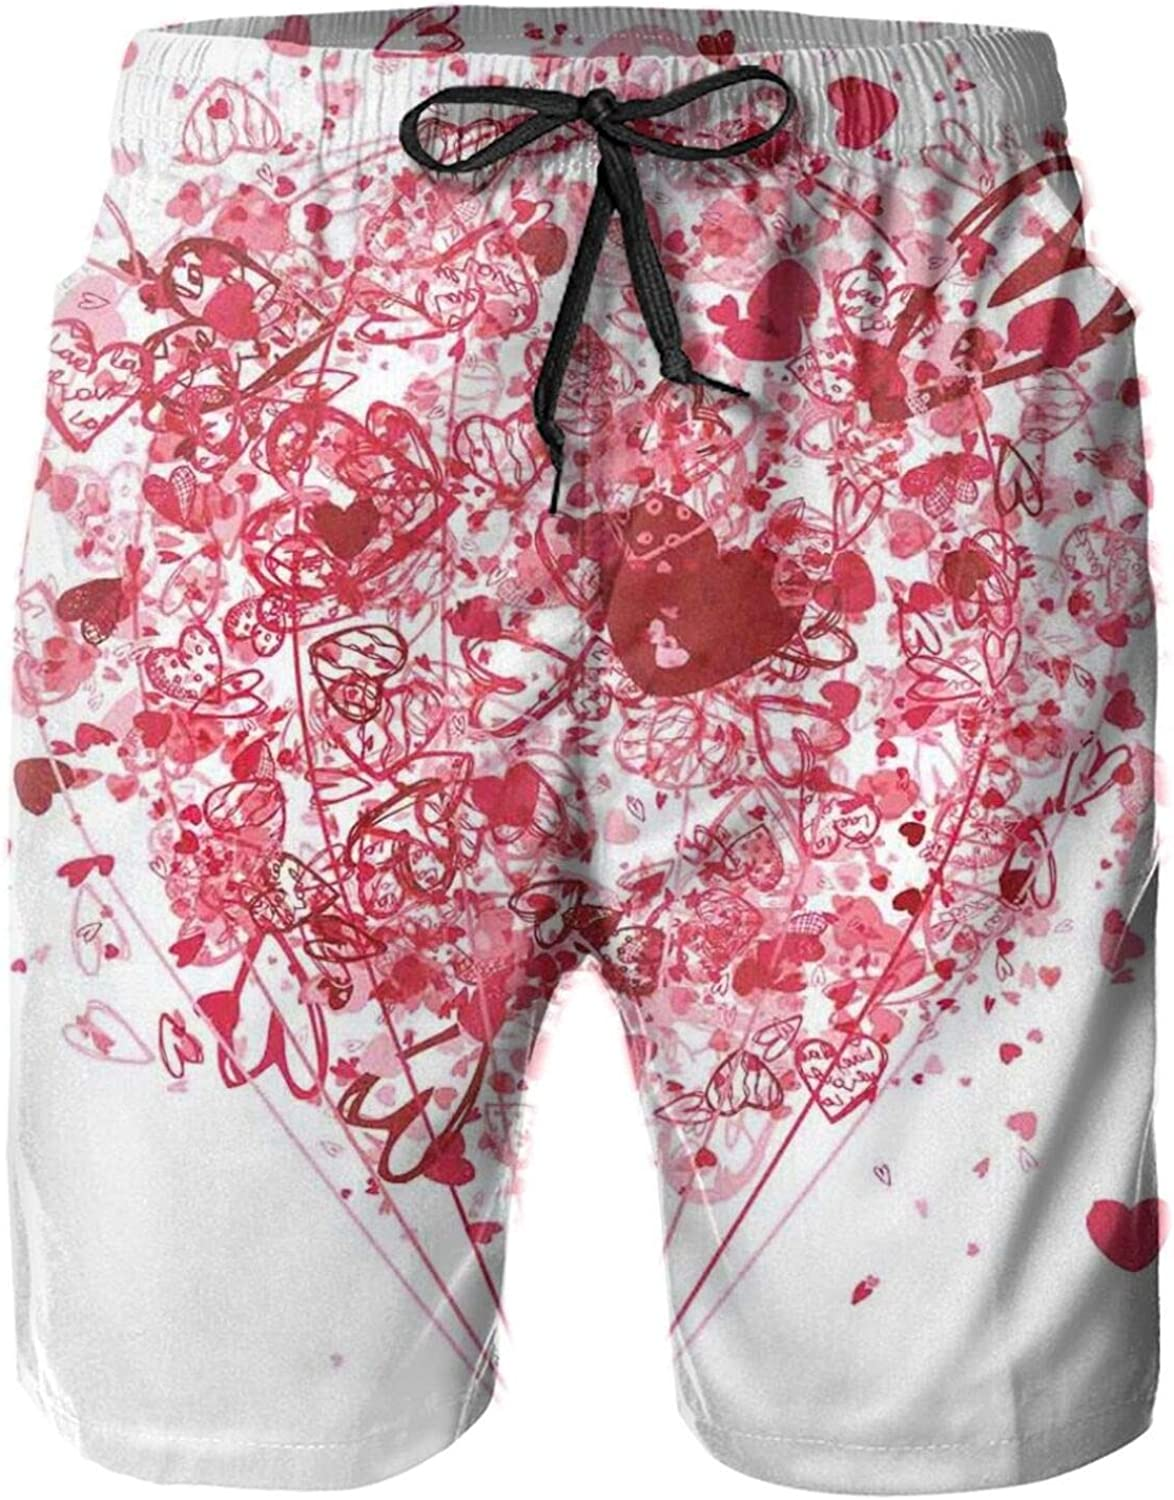 Love is in The Air Valentines Day Celebration Themed Heart Filled Air Balloon Mens Swim Shorts Casual Workout Short Pants Drawstring Beach Shorts,XL